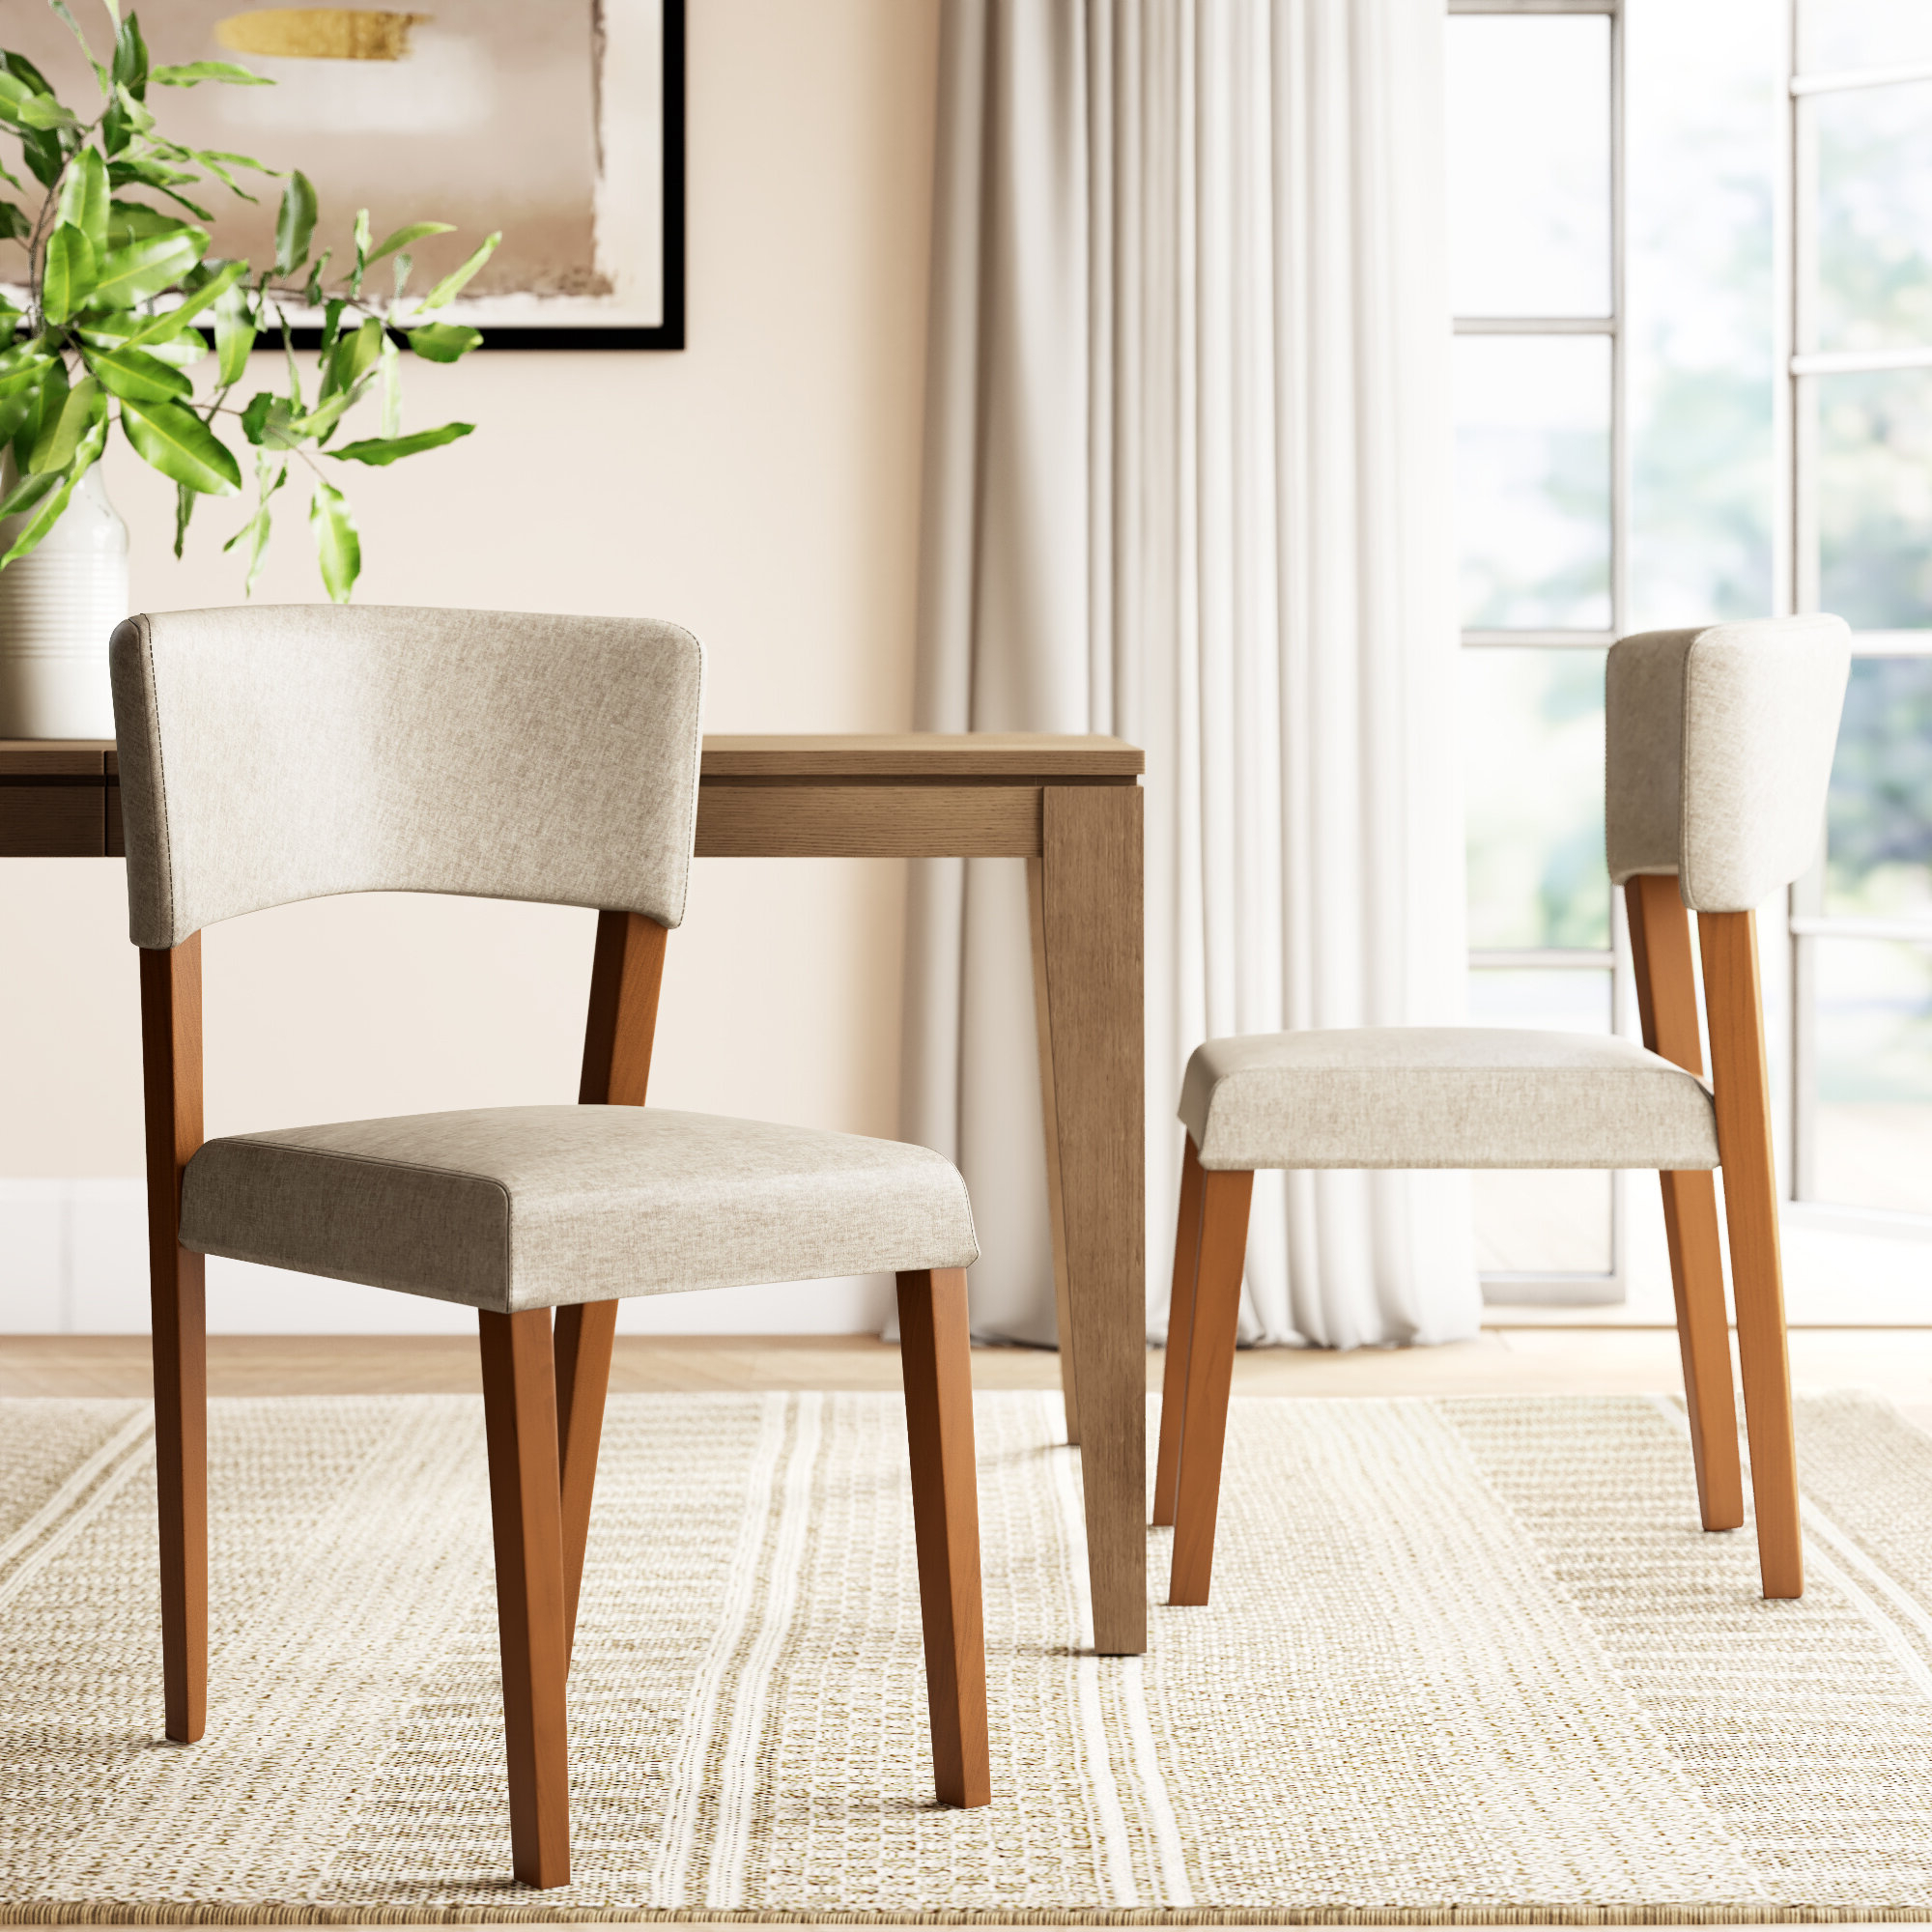 Joss & Main Within Bob Stripe Upholstered Dining Chairs (set Of 2) (View 15 of 20)